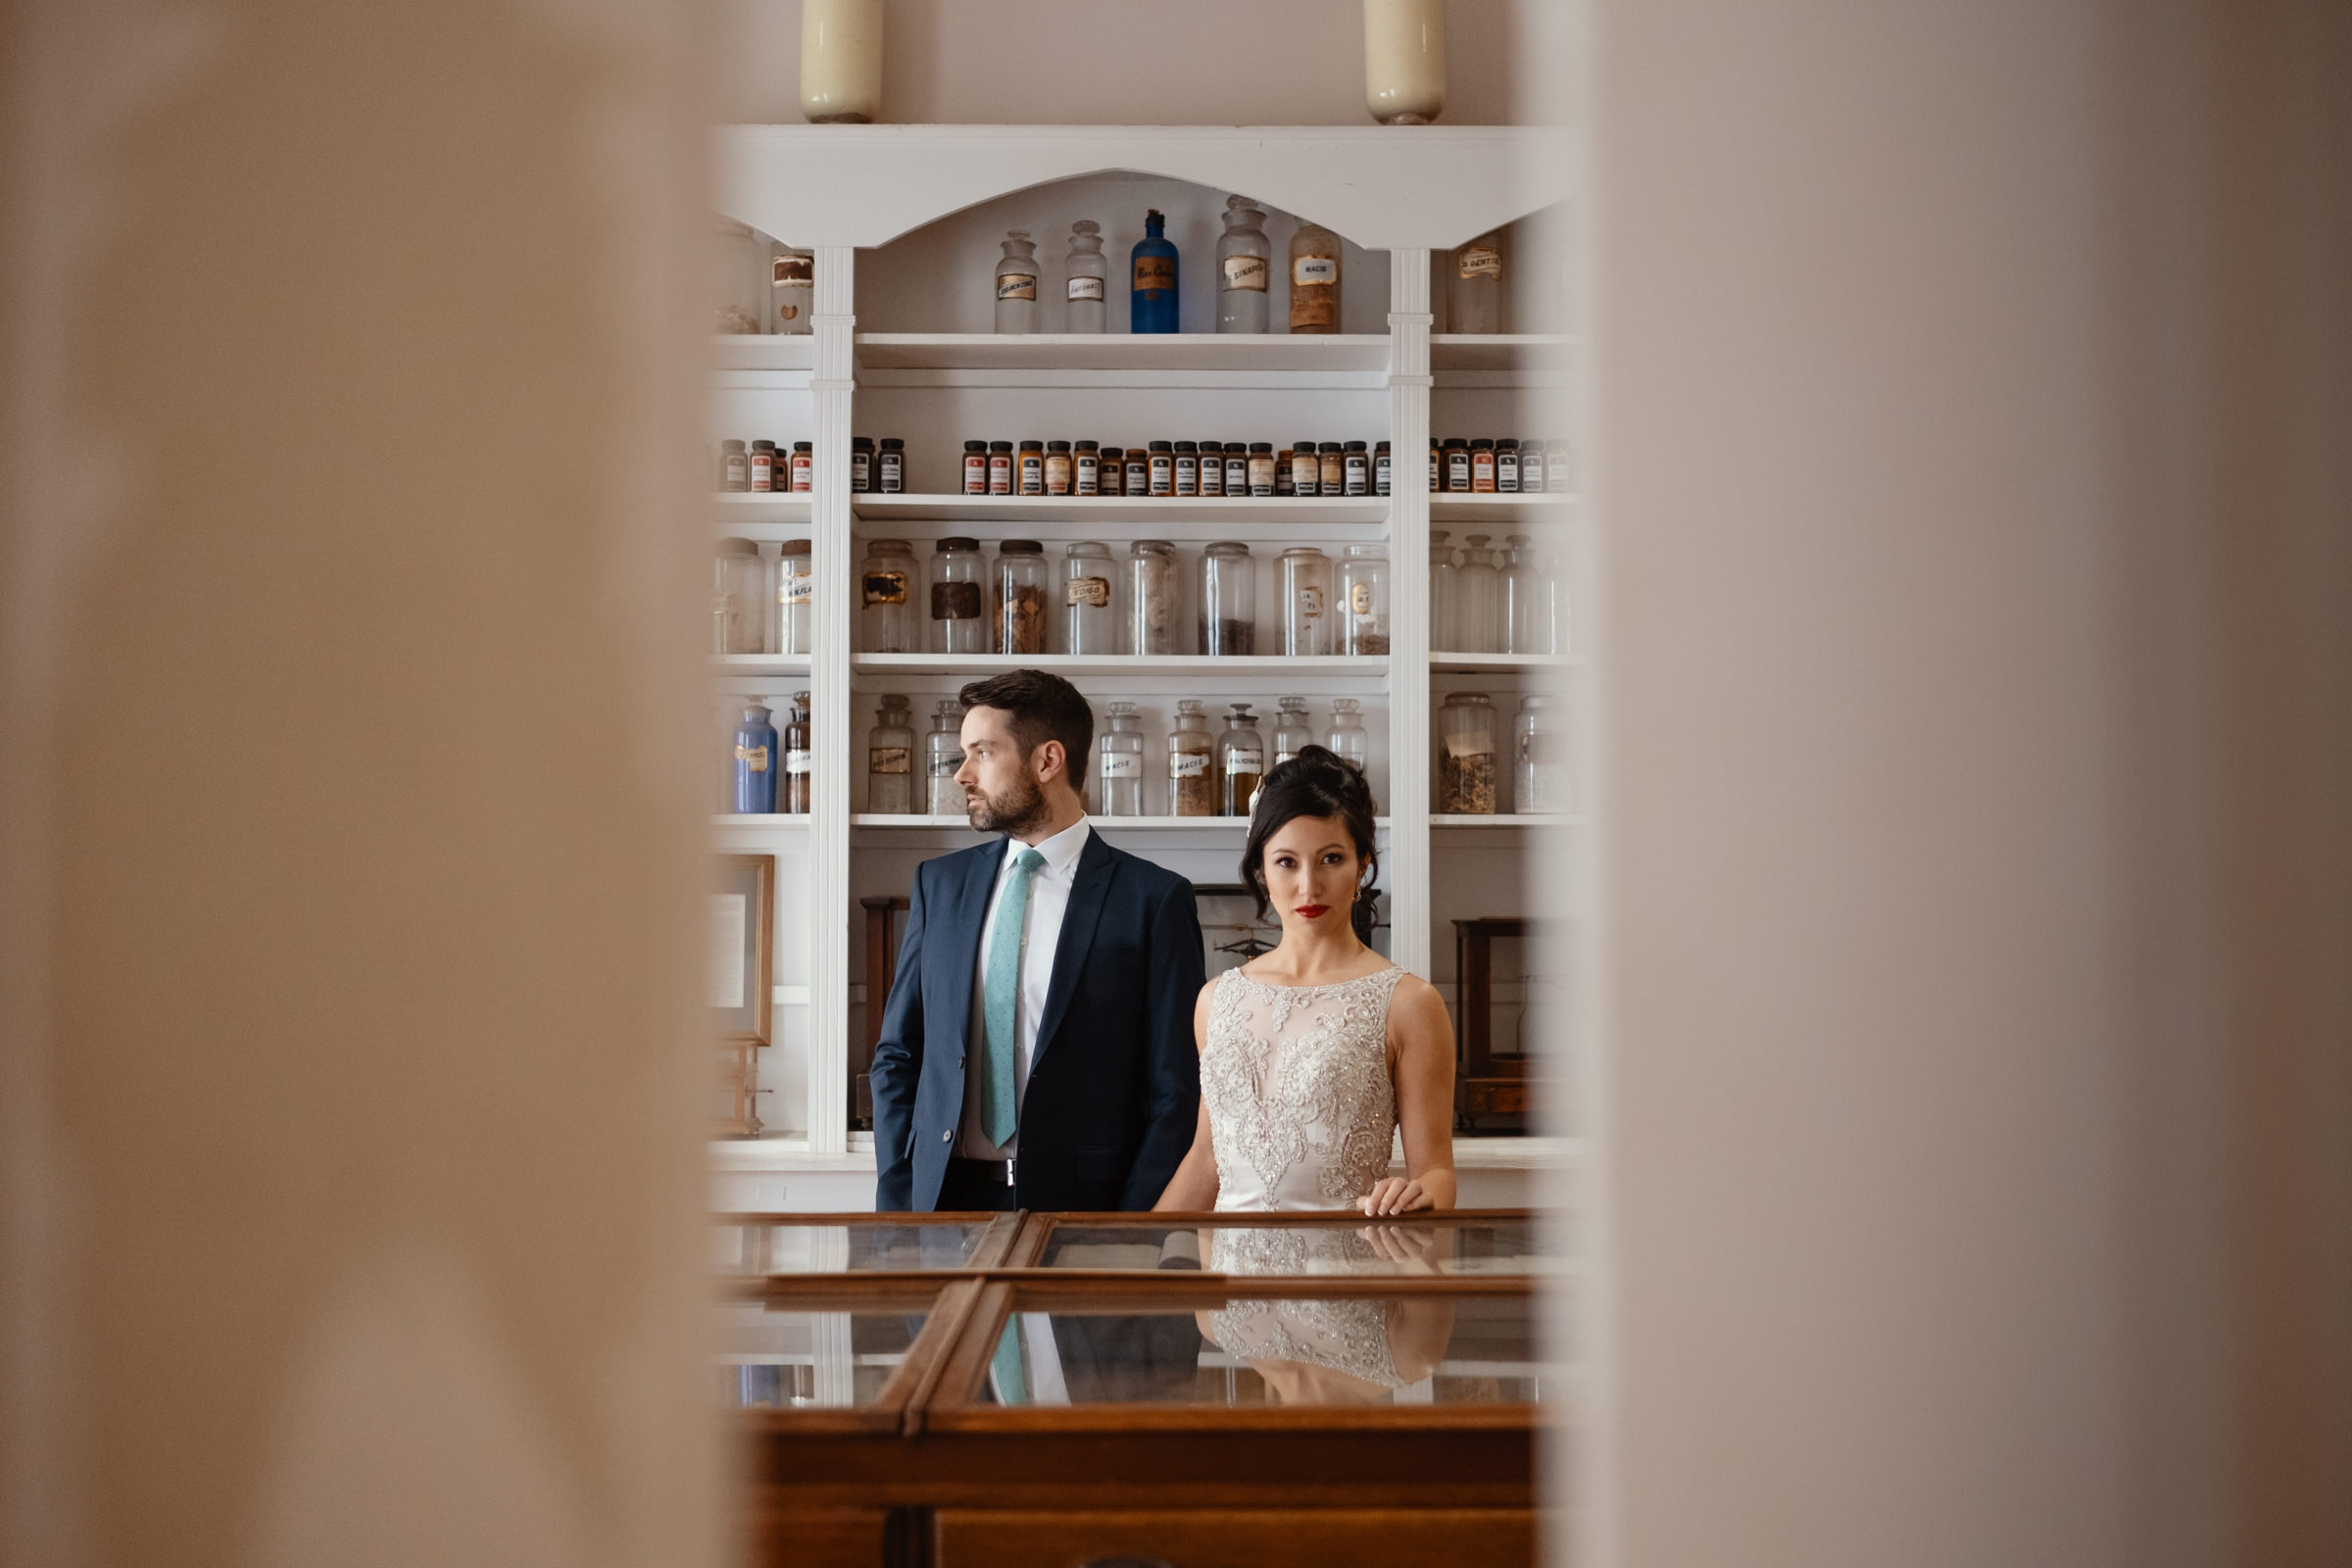 bride and groom portrait in the candy shop-new orleans-austin-houston-wedding photographer- photo by Dark Roux